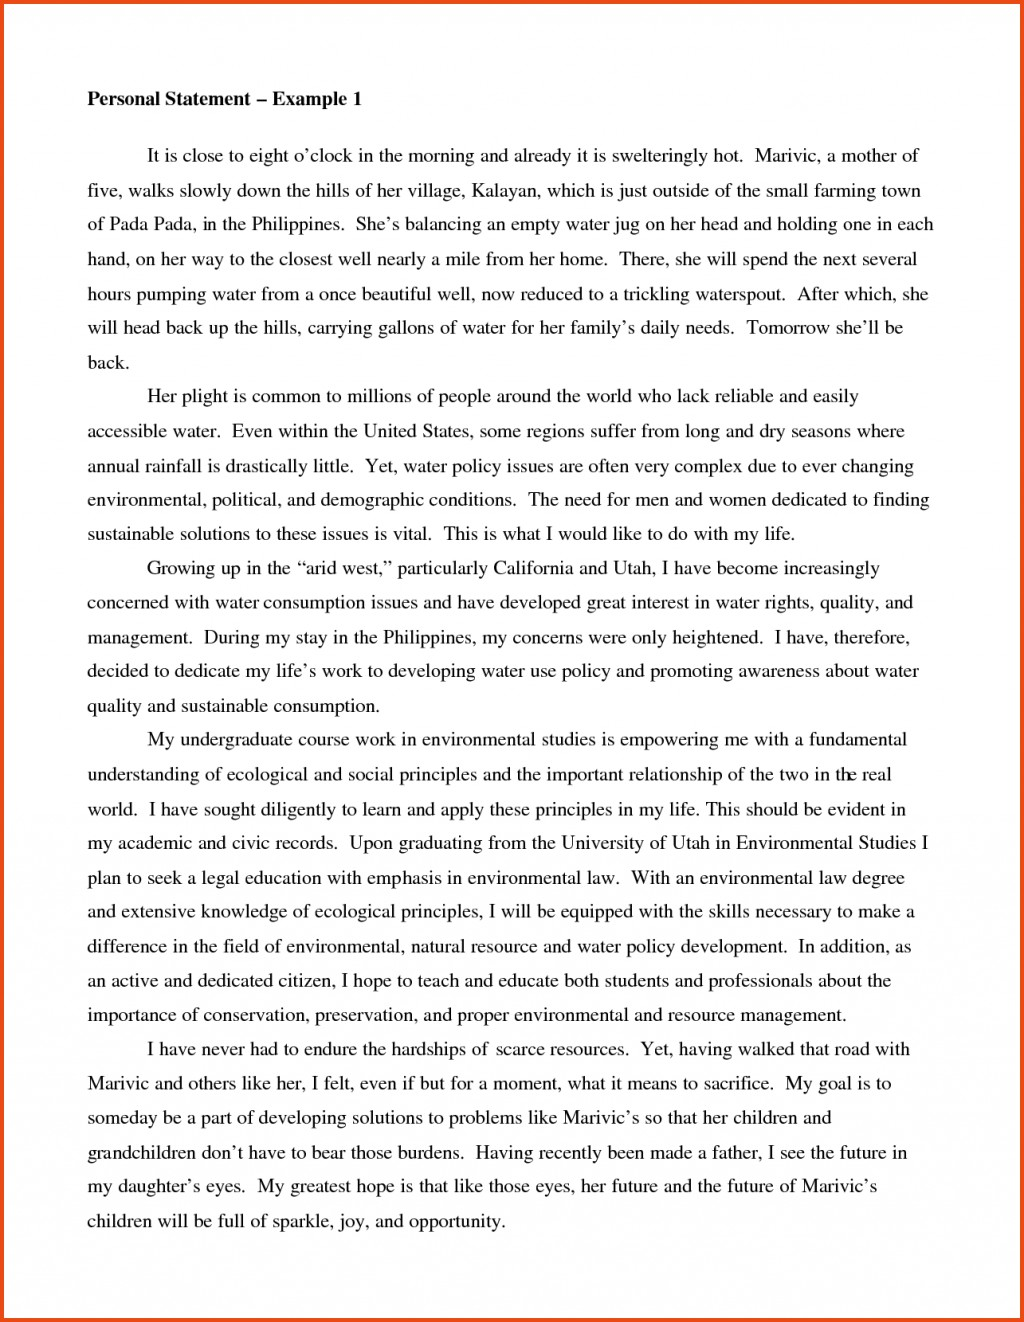 007 Essay Example Uc Essays Examples Aka Personal Insight Questions Prompt Statement Gre Writing For 5th Grade Middle School College 4th High Frightening Prompts Tips Large